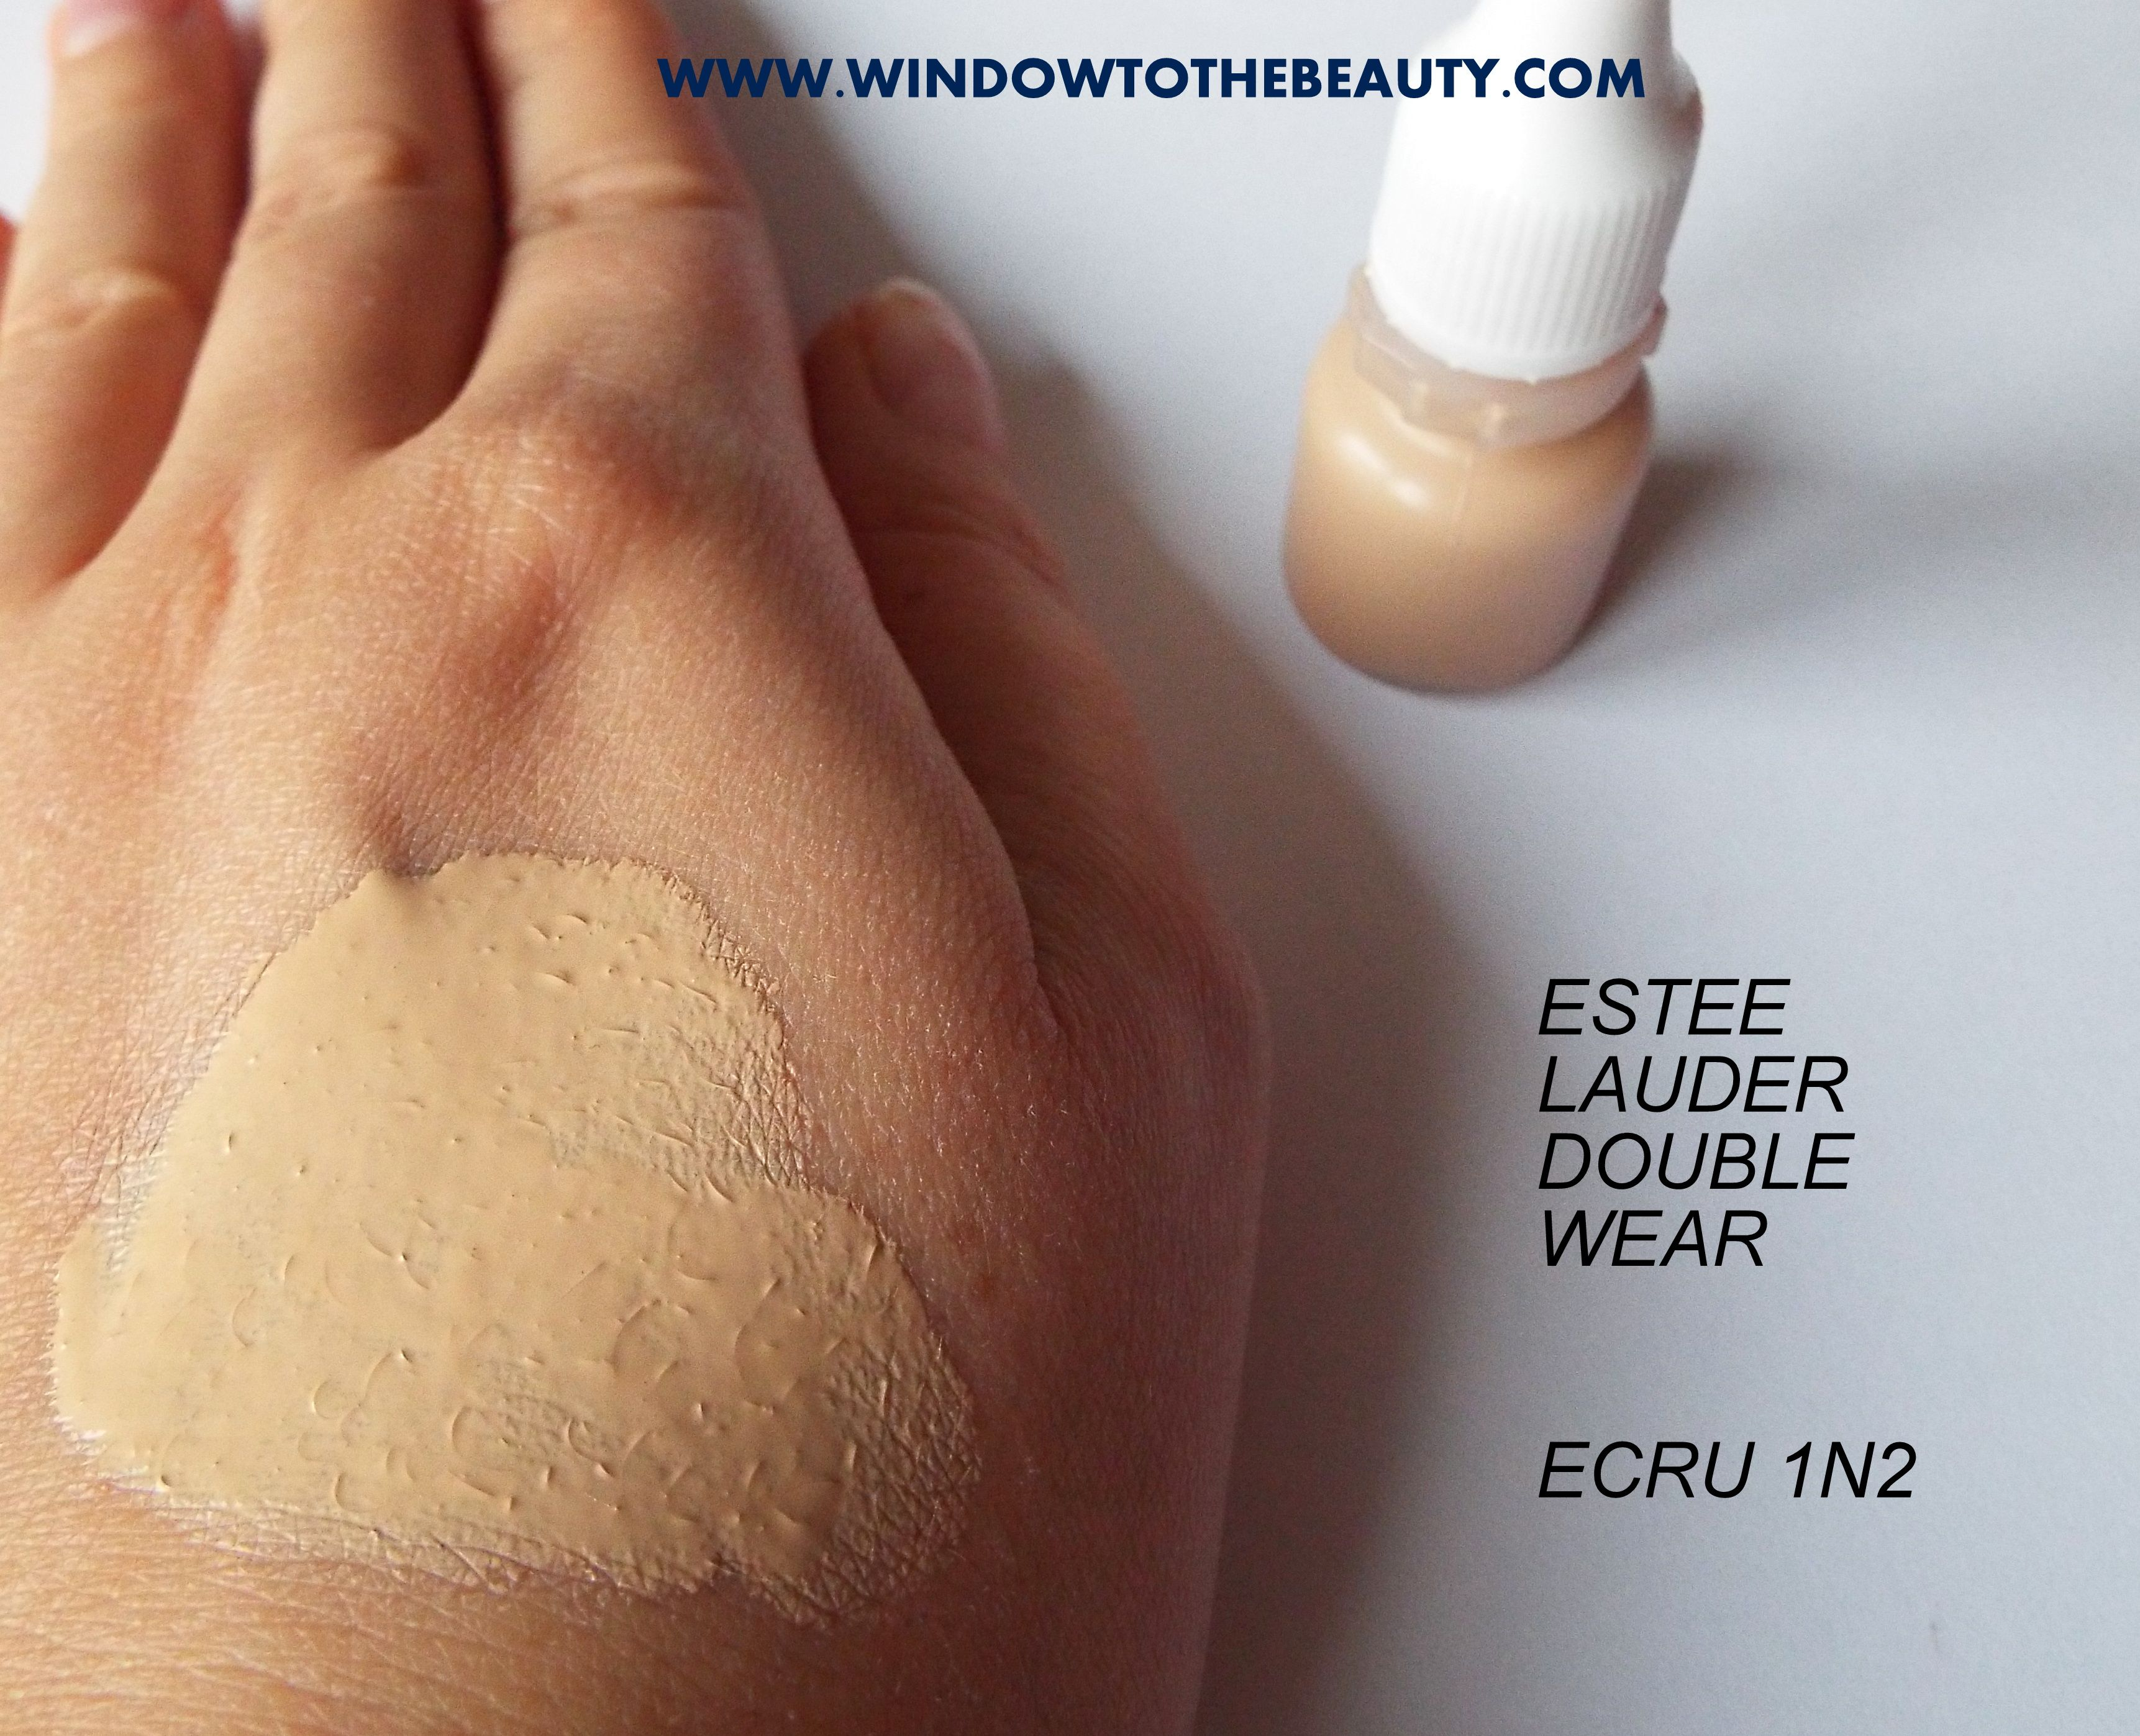 estee lauder double wear 1n2